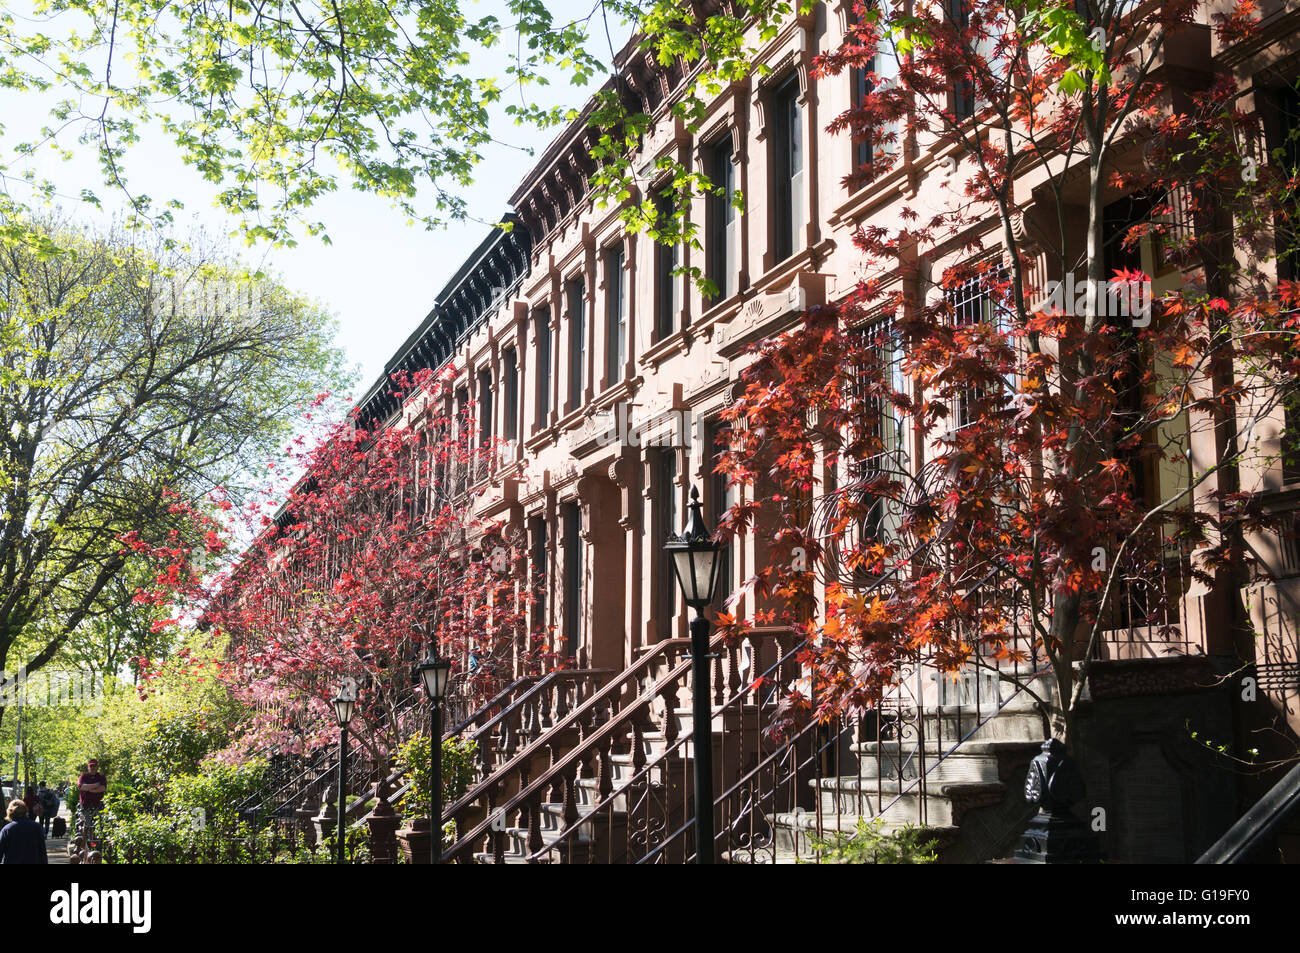 Terrace of brownstone houses with spring color, Park Slope, Brooklyn, New York, USA Stock Photo